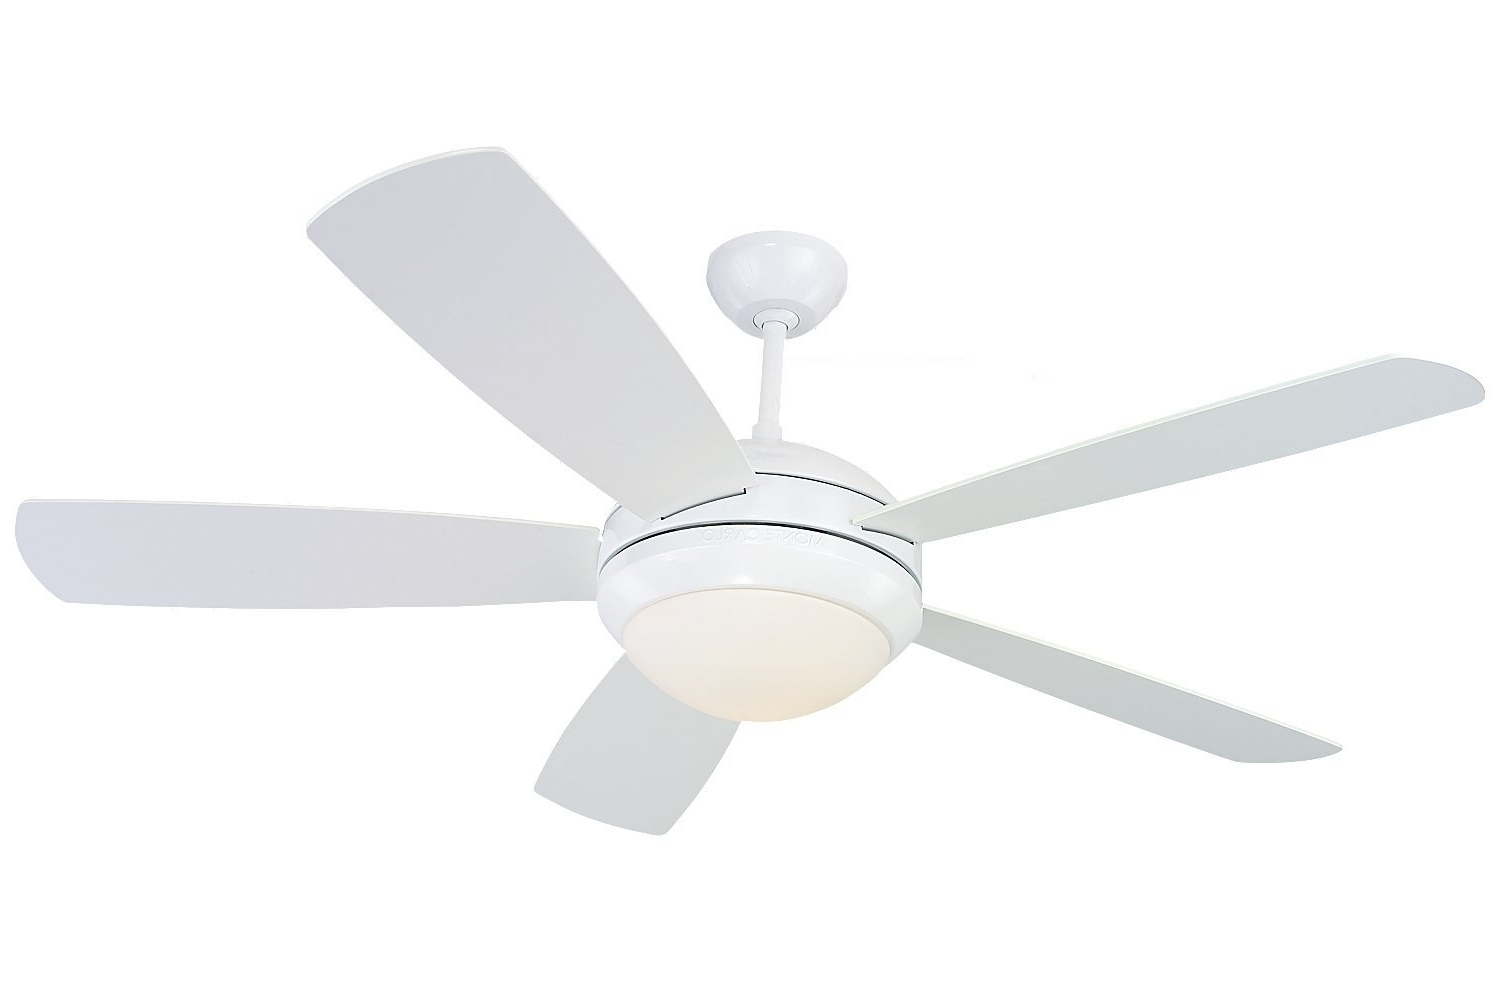 Amazon Ceiling Fans With Lights Unique Outdoor Ceiling Fan With Regarding Most Popular Amazon Outdoor Ceiling Fans With Lights (View 3 of 20)